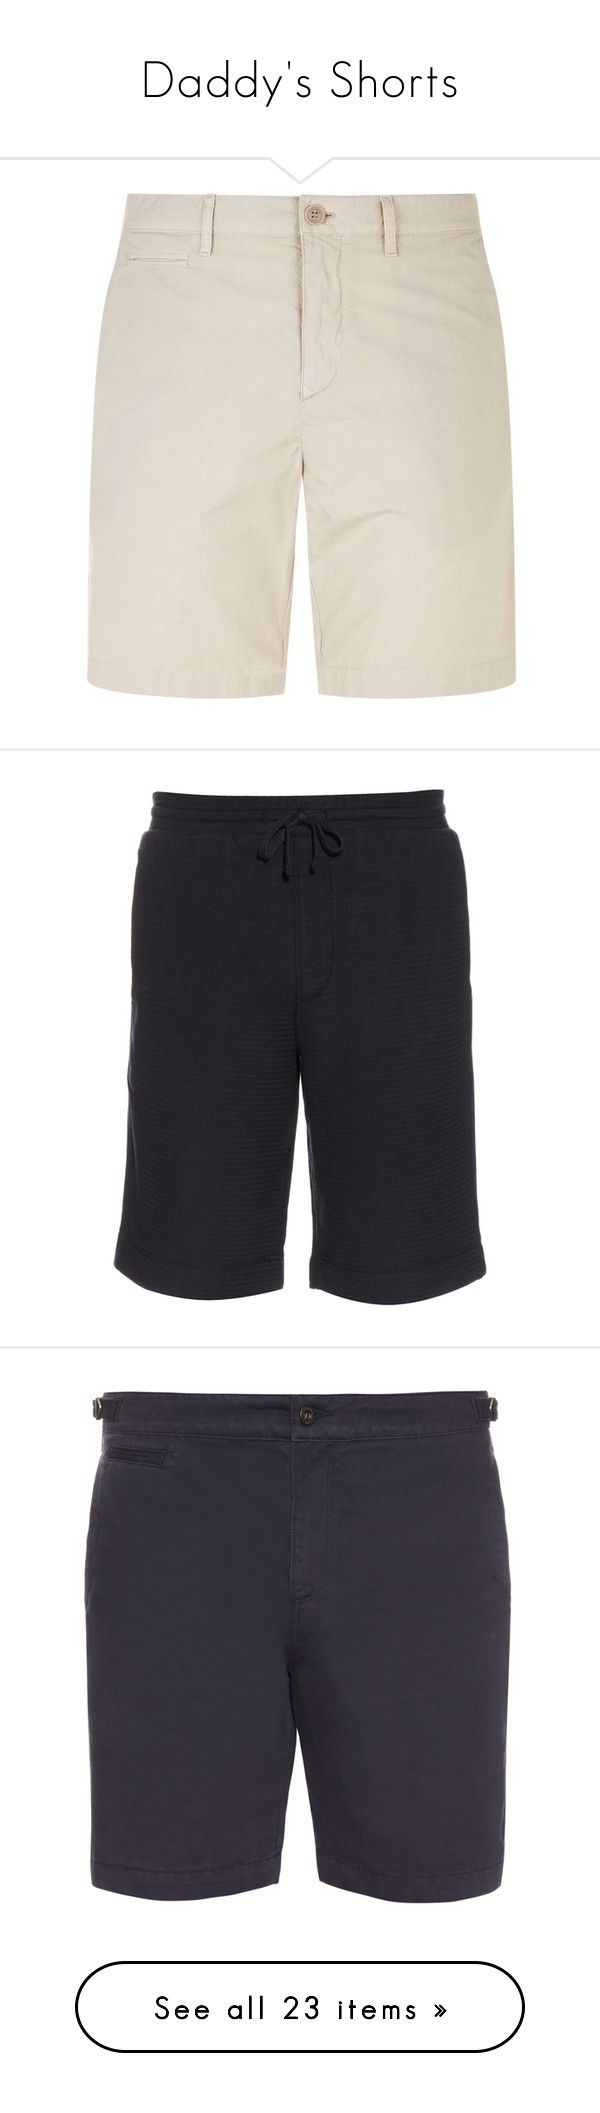 """Daddy's Shorts"" by xoxomirah ❤ liked on Polyvore featuring men's fashion, men's clothing, men's activewear, men's activewear shorts, porsche design, men's shorts, burberry mens clothing, mens chino shorts, slim fit mens clothing and mens military shorts"